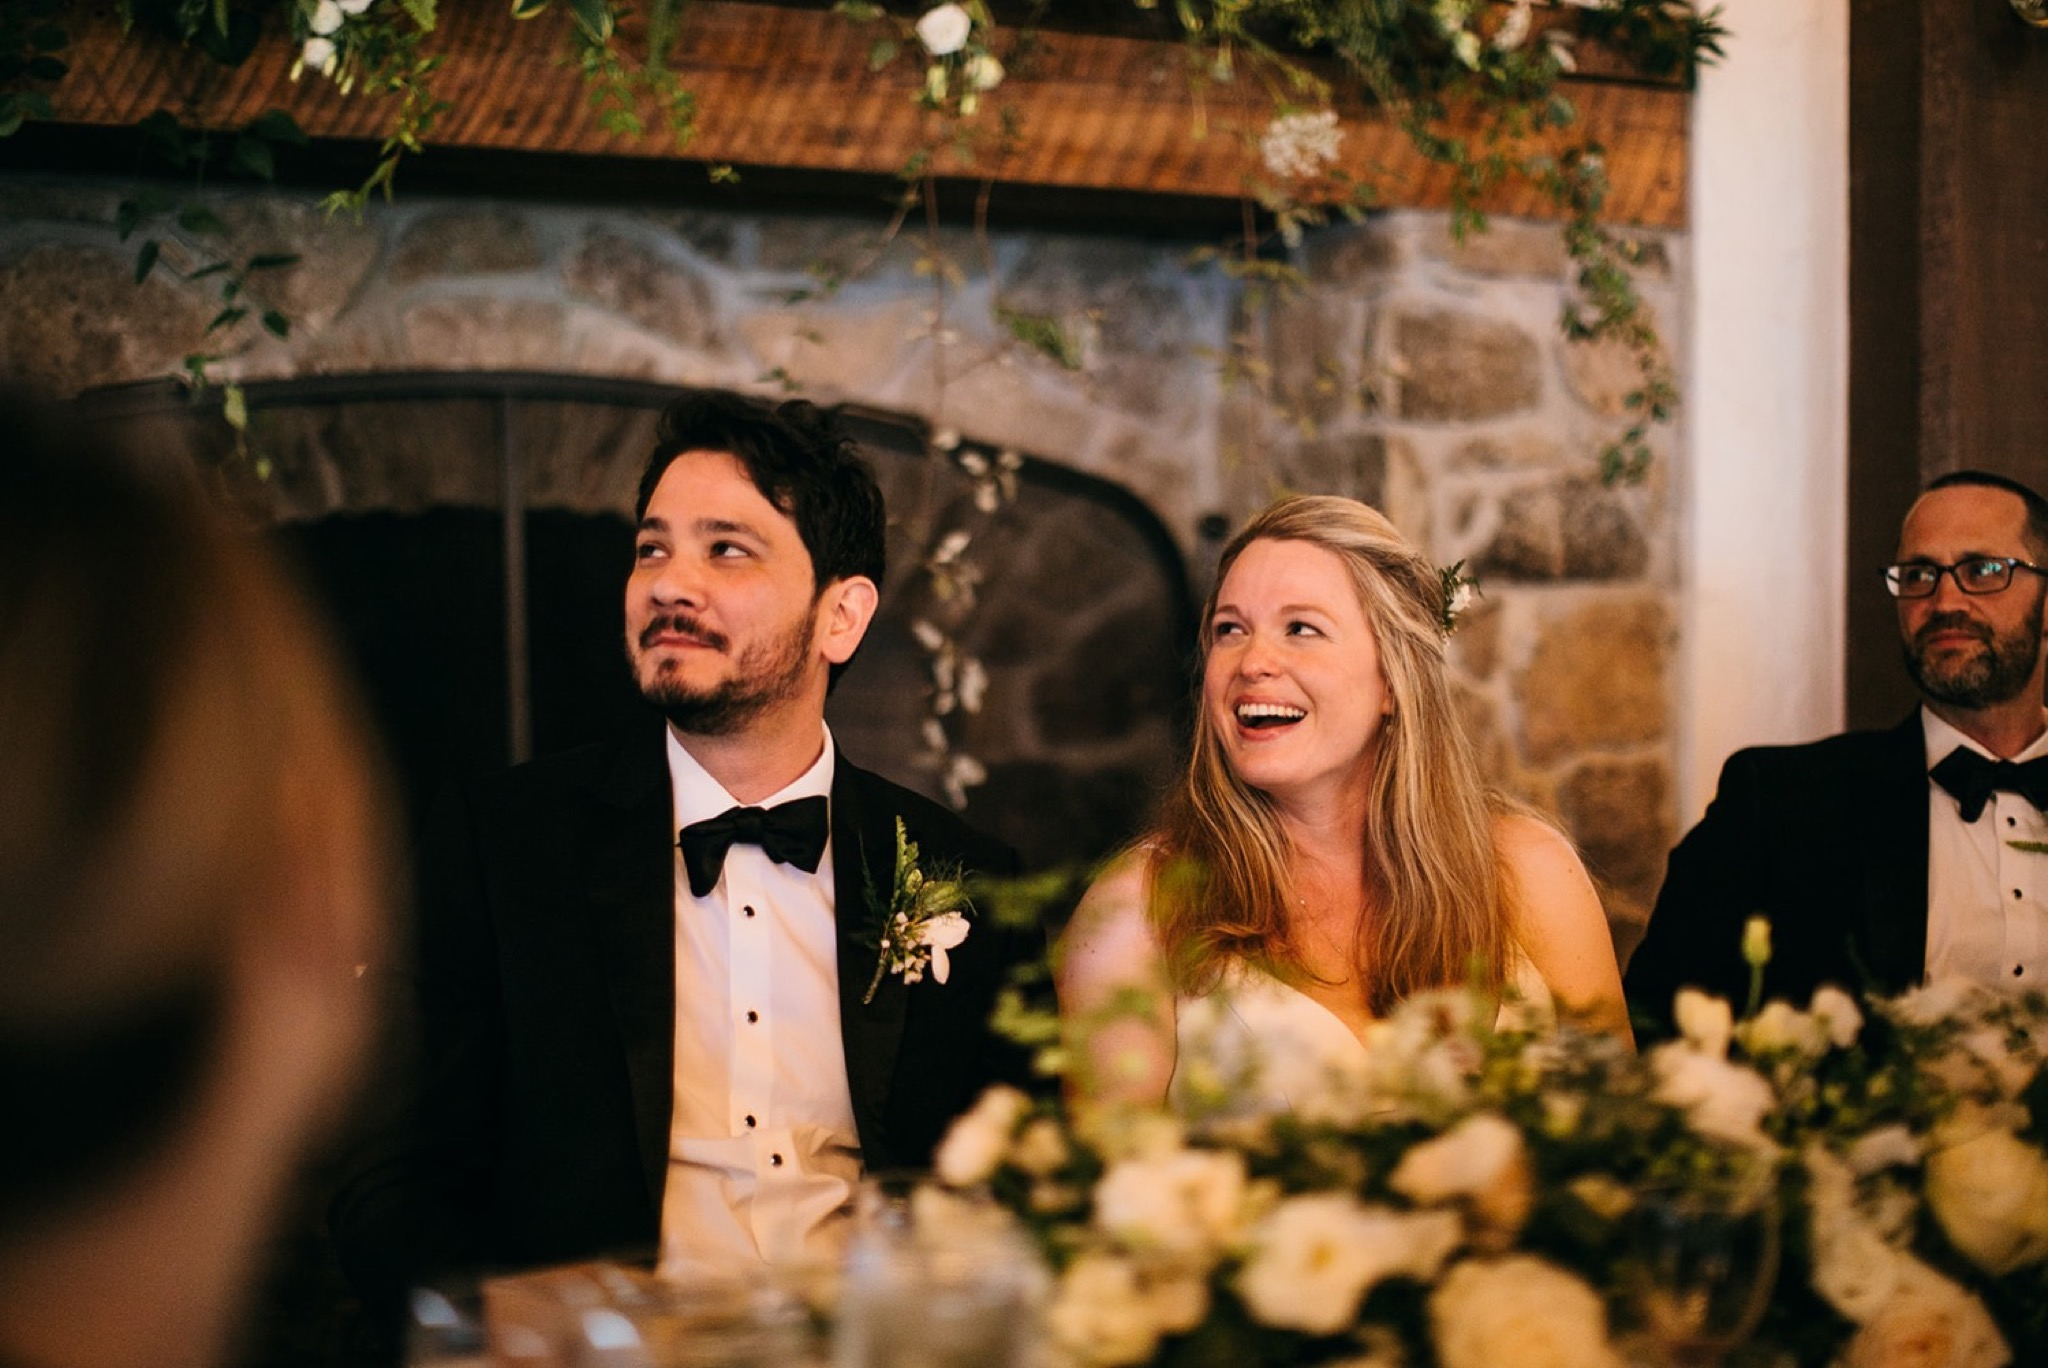 bride and groom smile while wedding guests look on